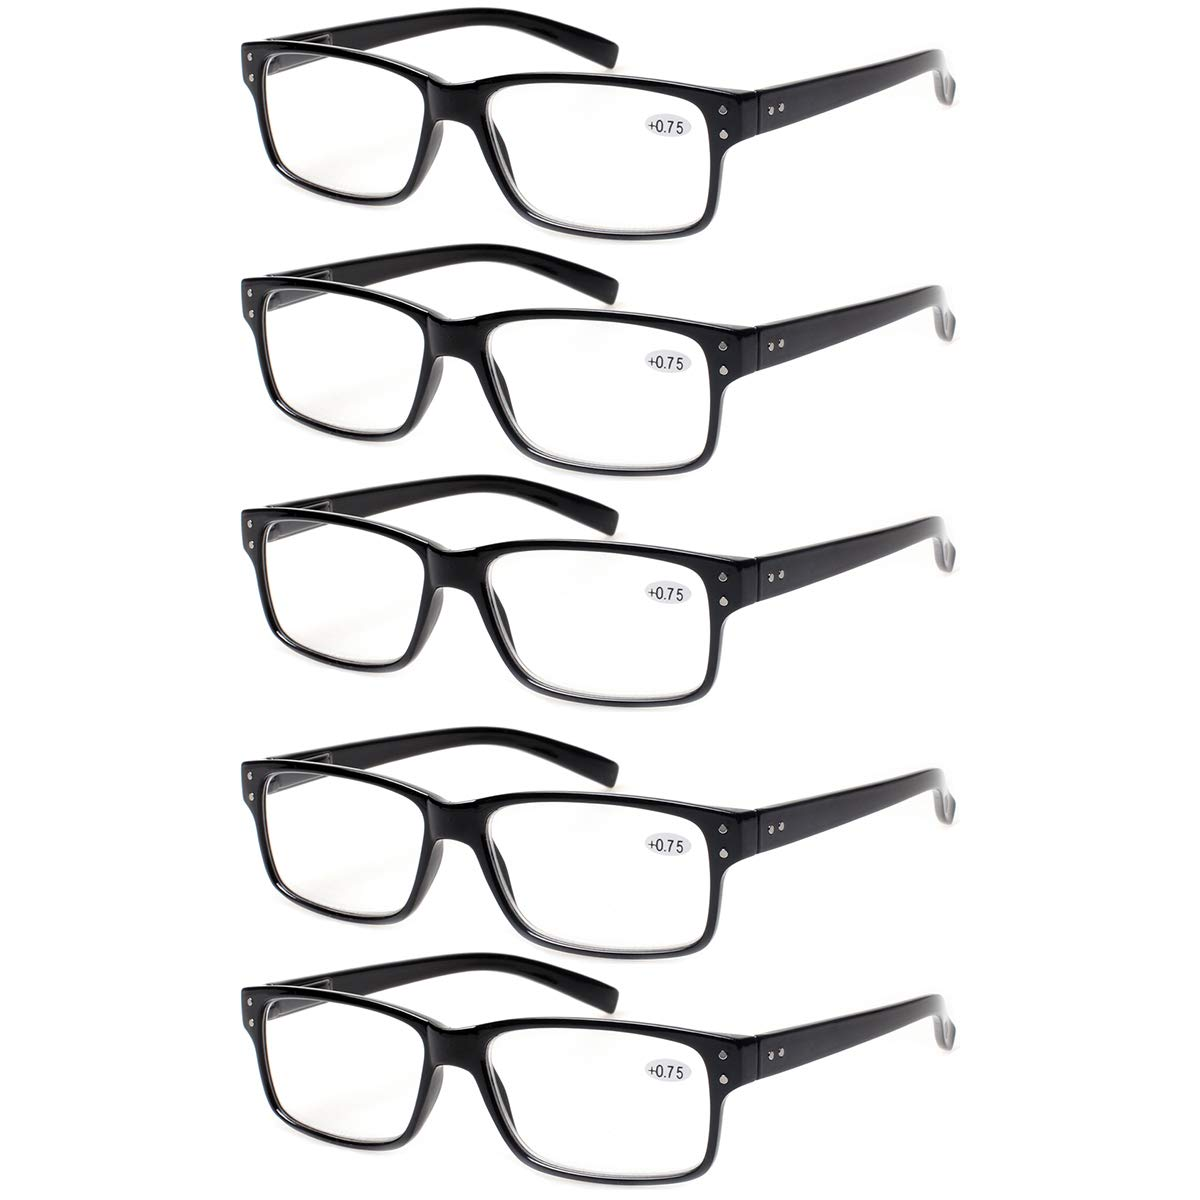 Reading Glasses 5 Pairs Quality Readers Spring Hinge Glasses for Reading for Men and Women (5 Pack Black, 1.50) by Norperwis